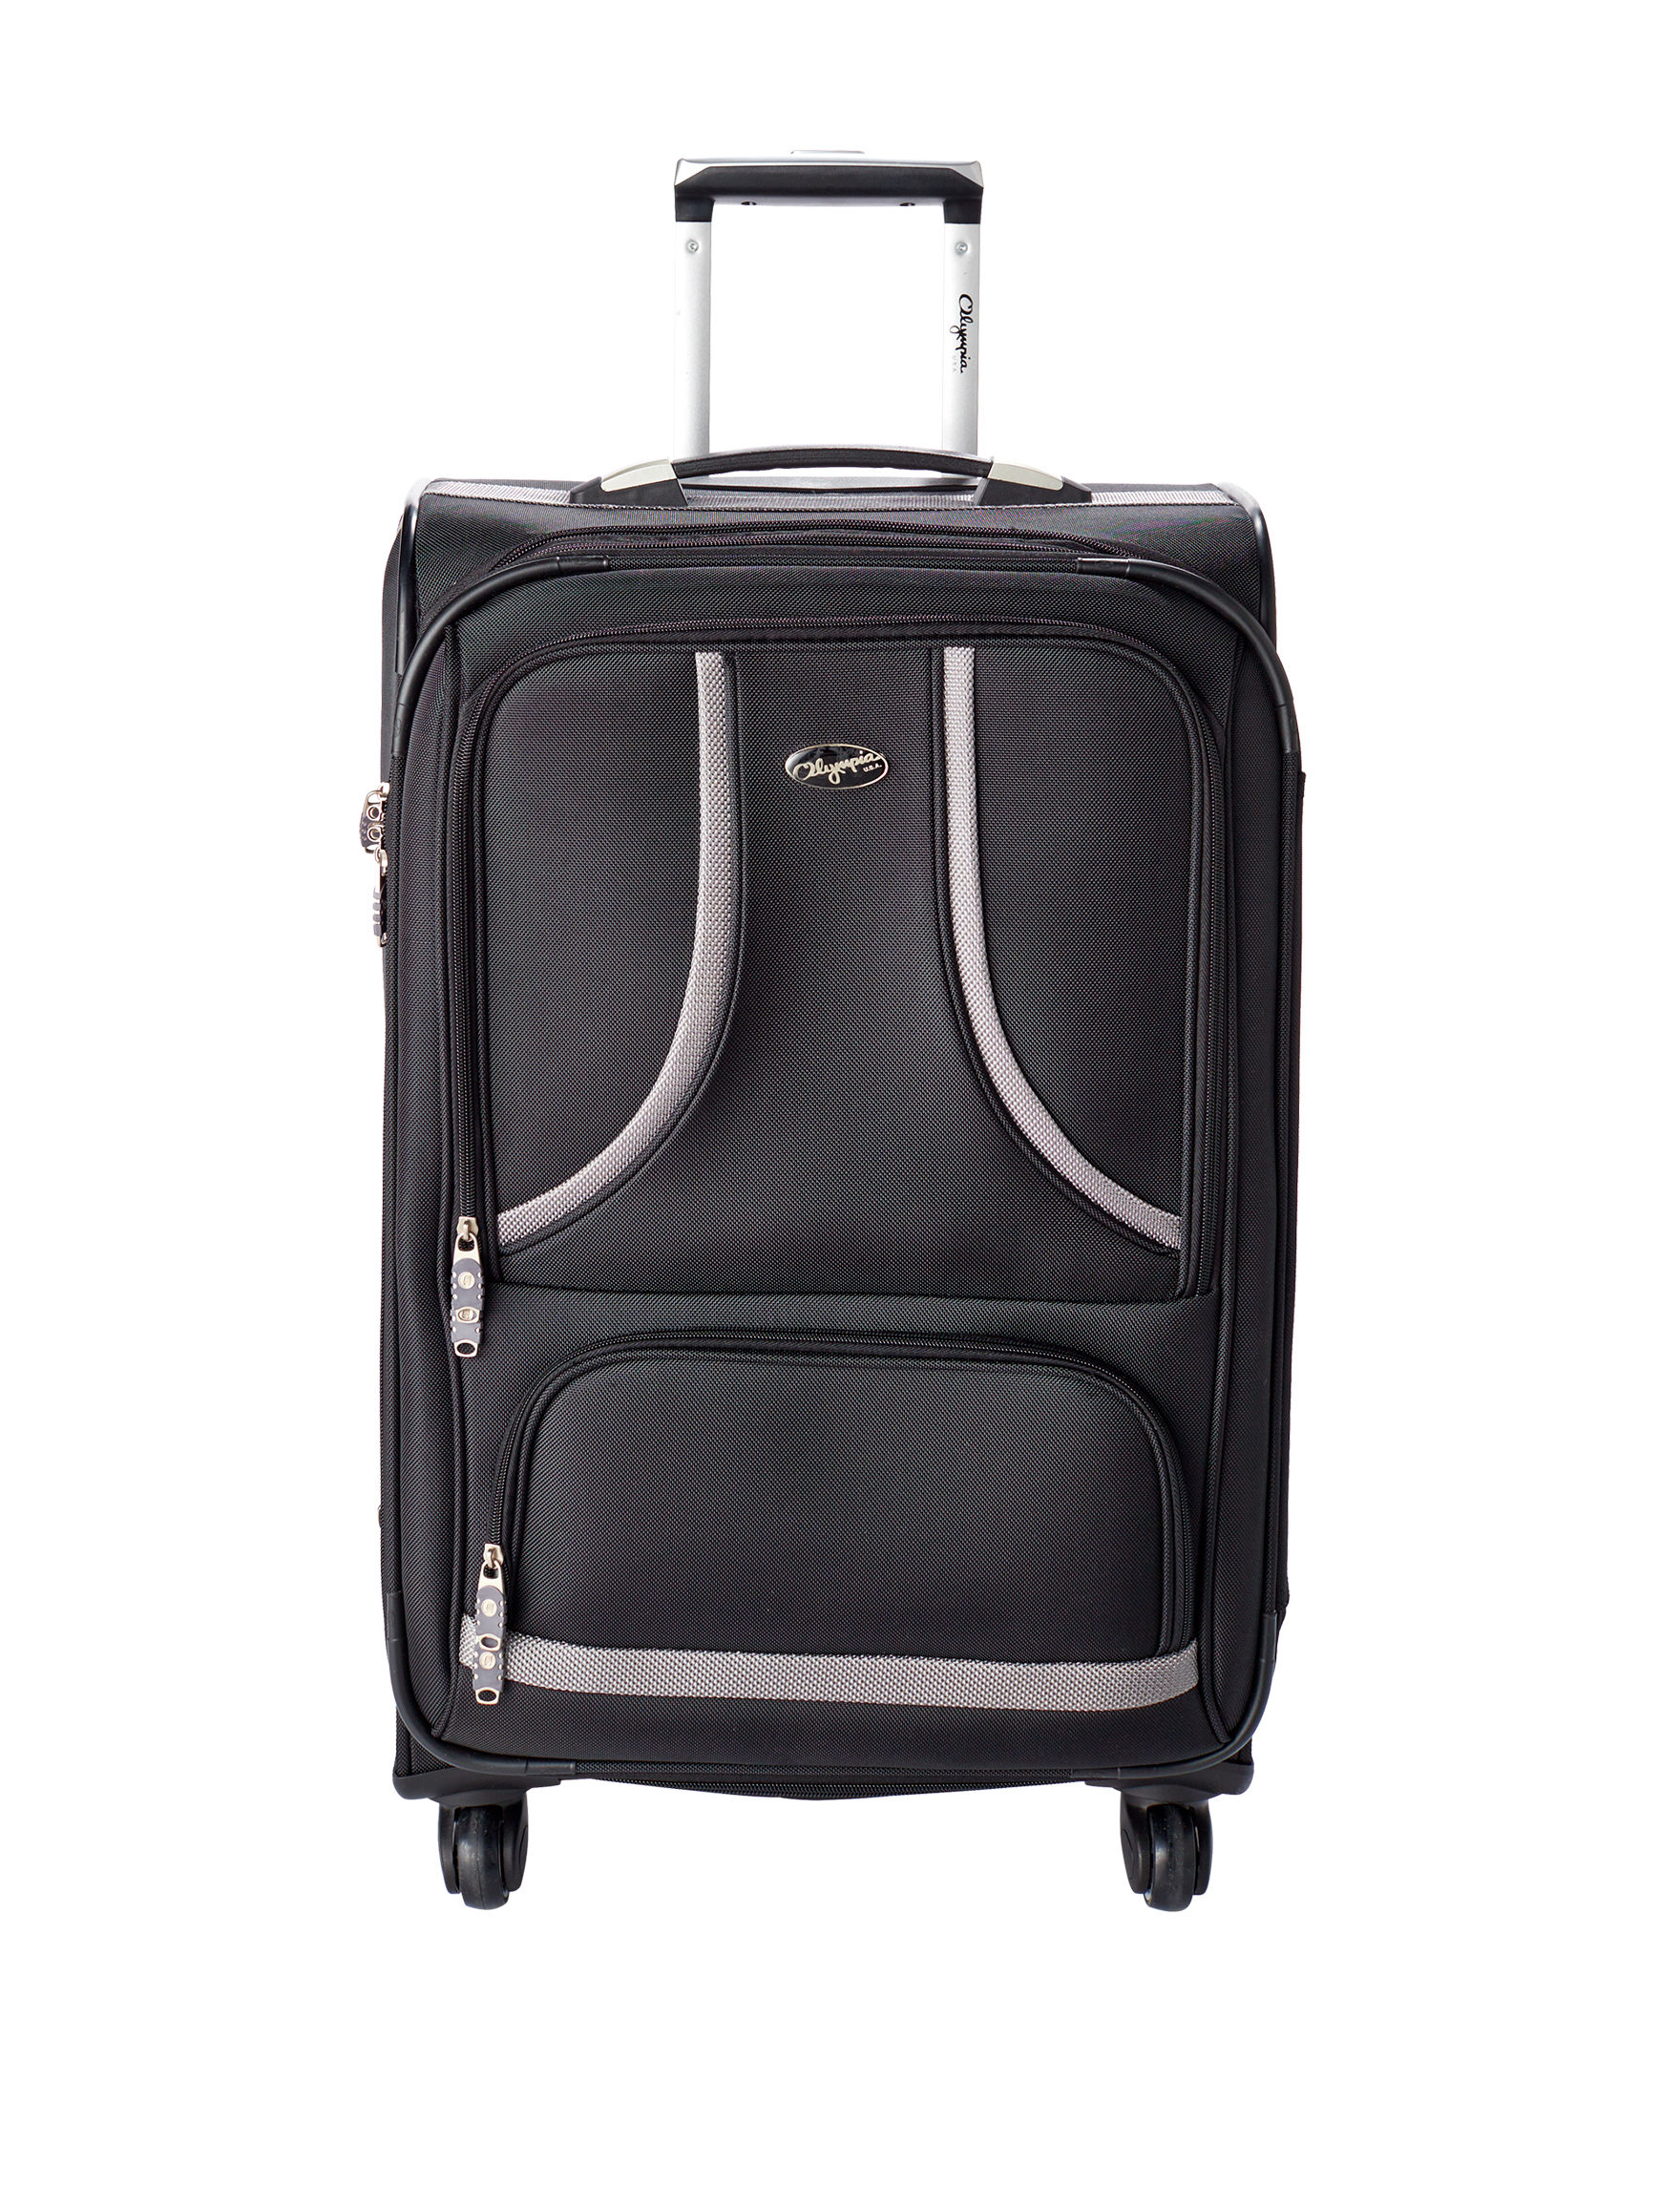 Olympia Black Softside Upright Spinners